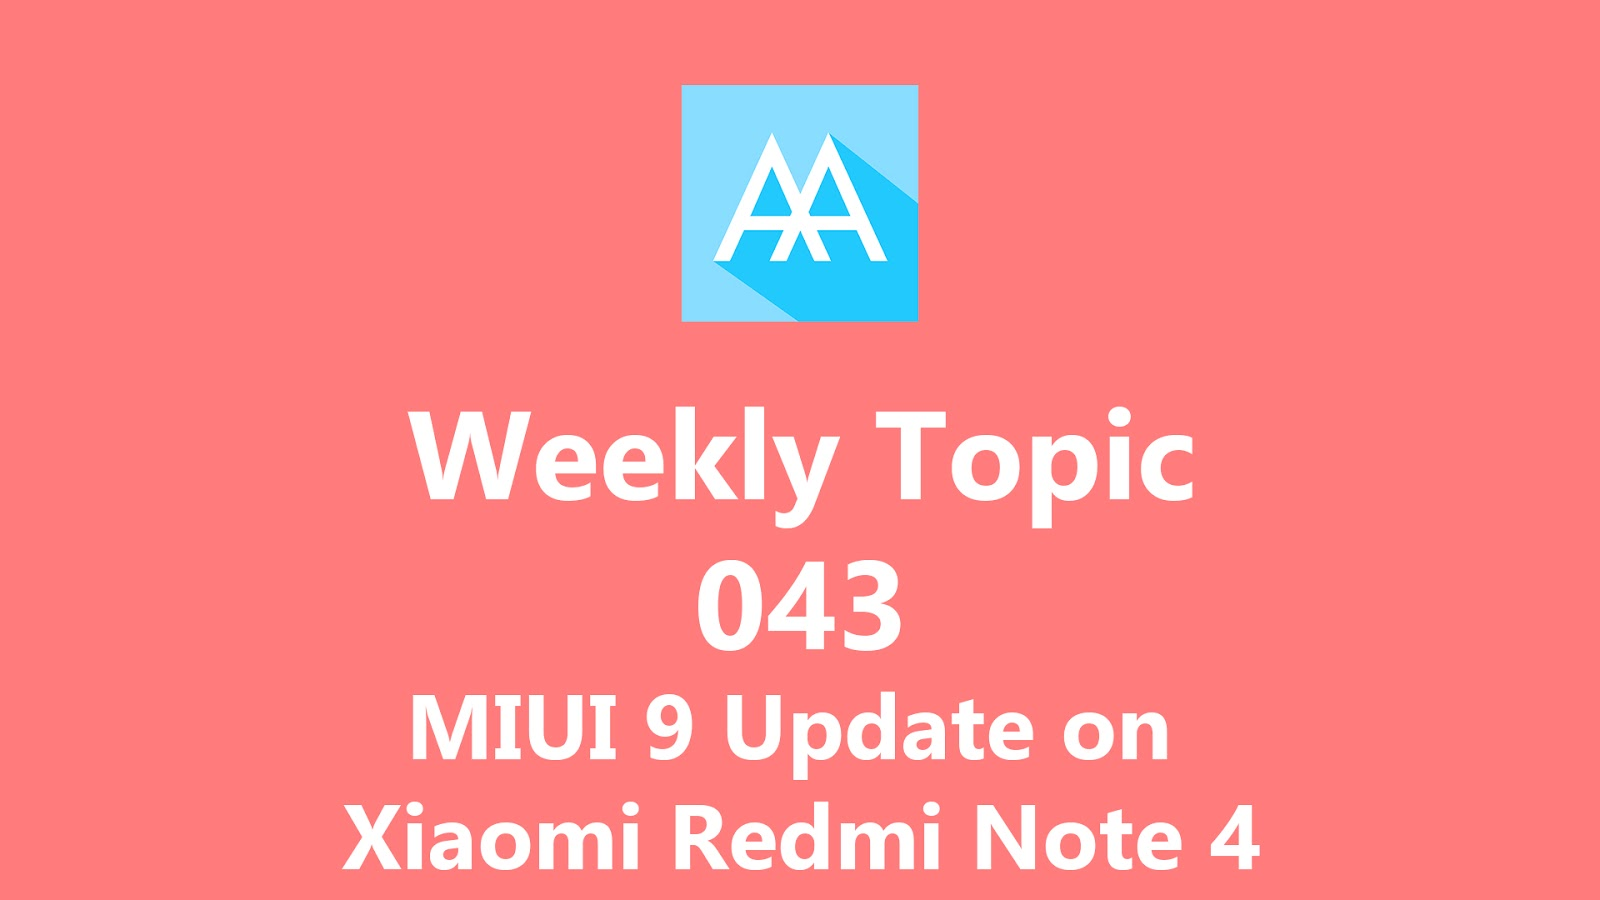 Weekly Topic 043: MIUI 9 Update on Xiaomi Redmi Note 4